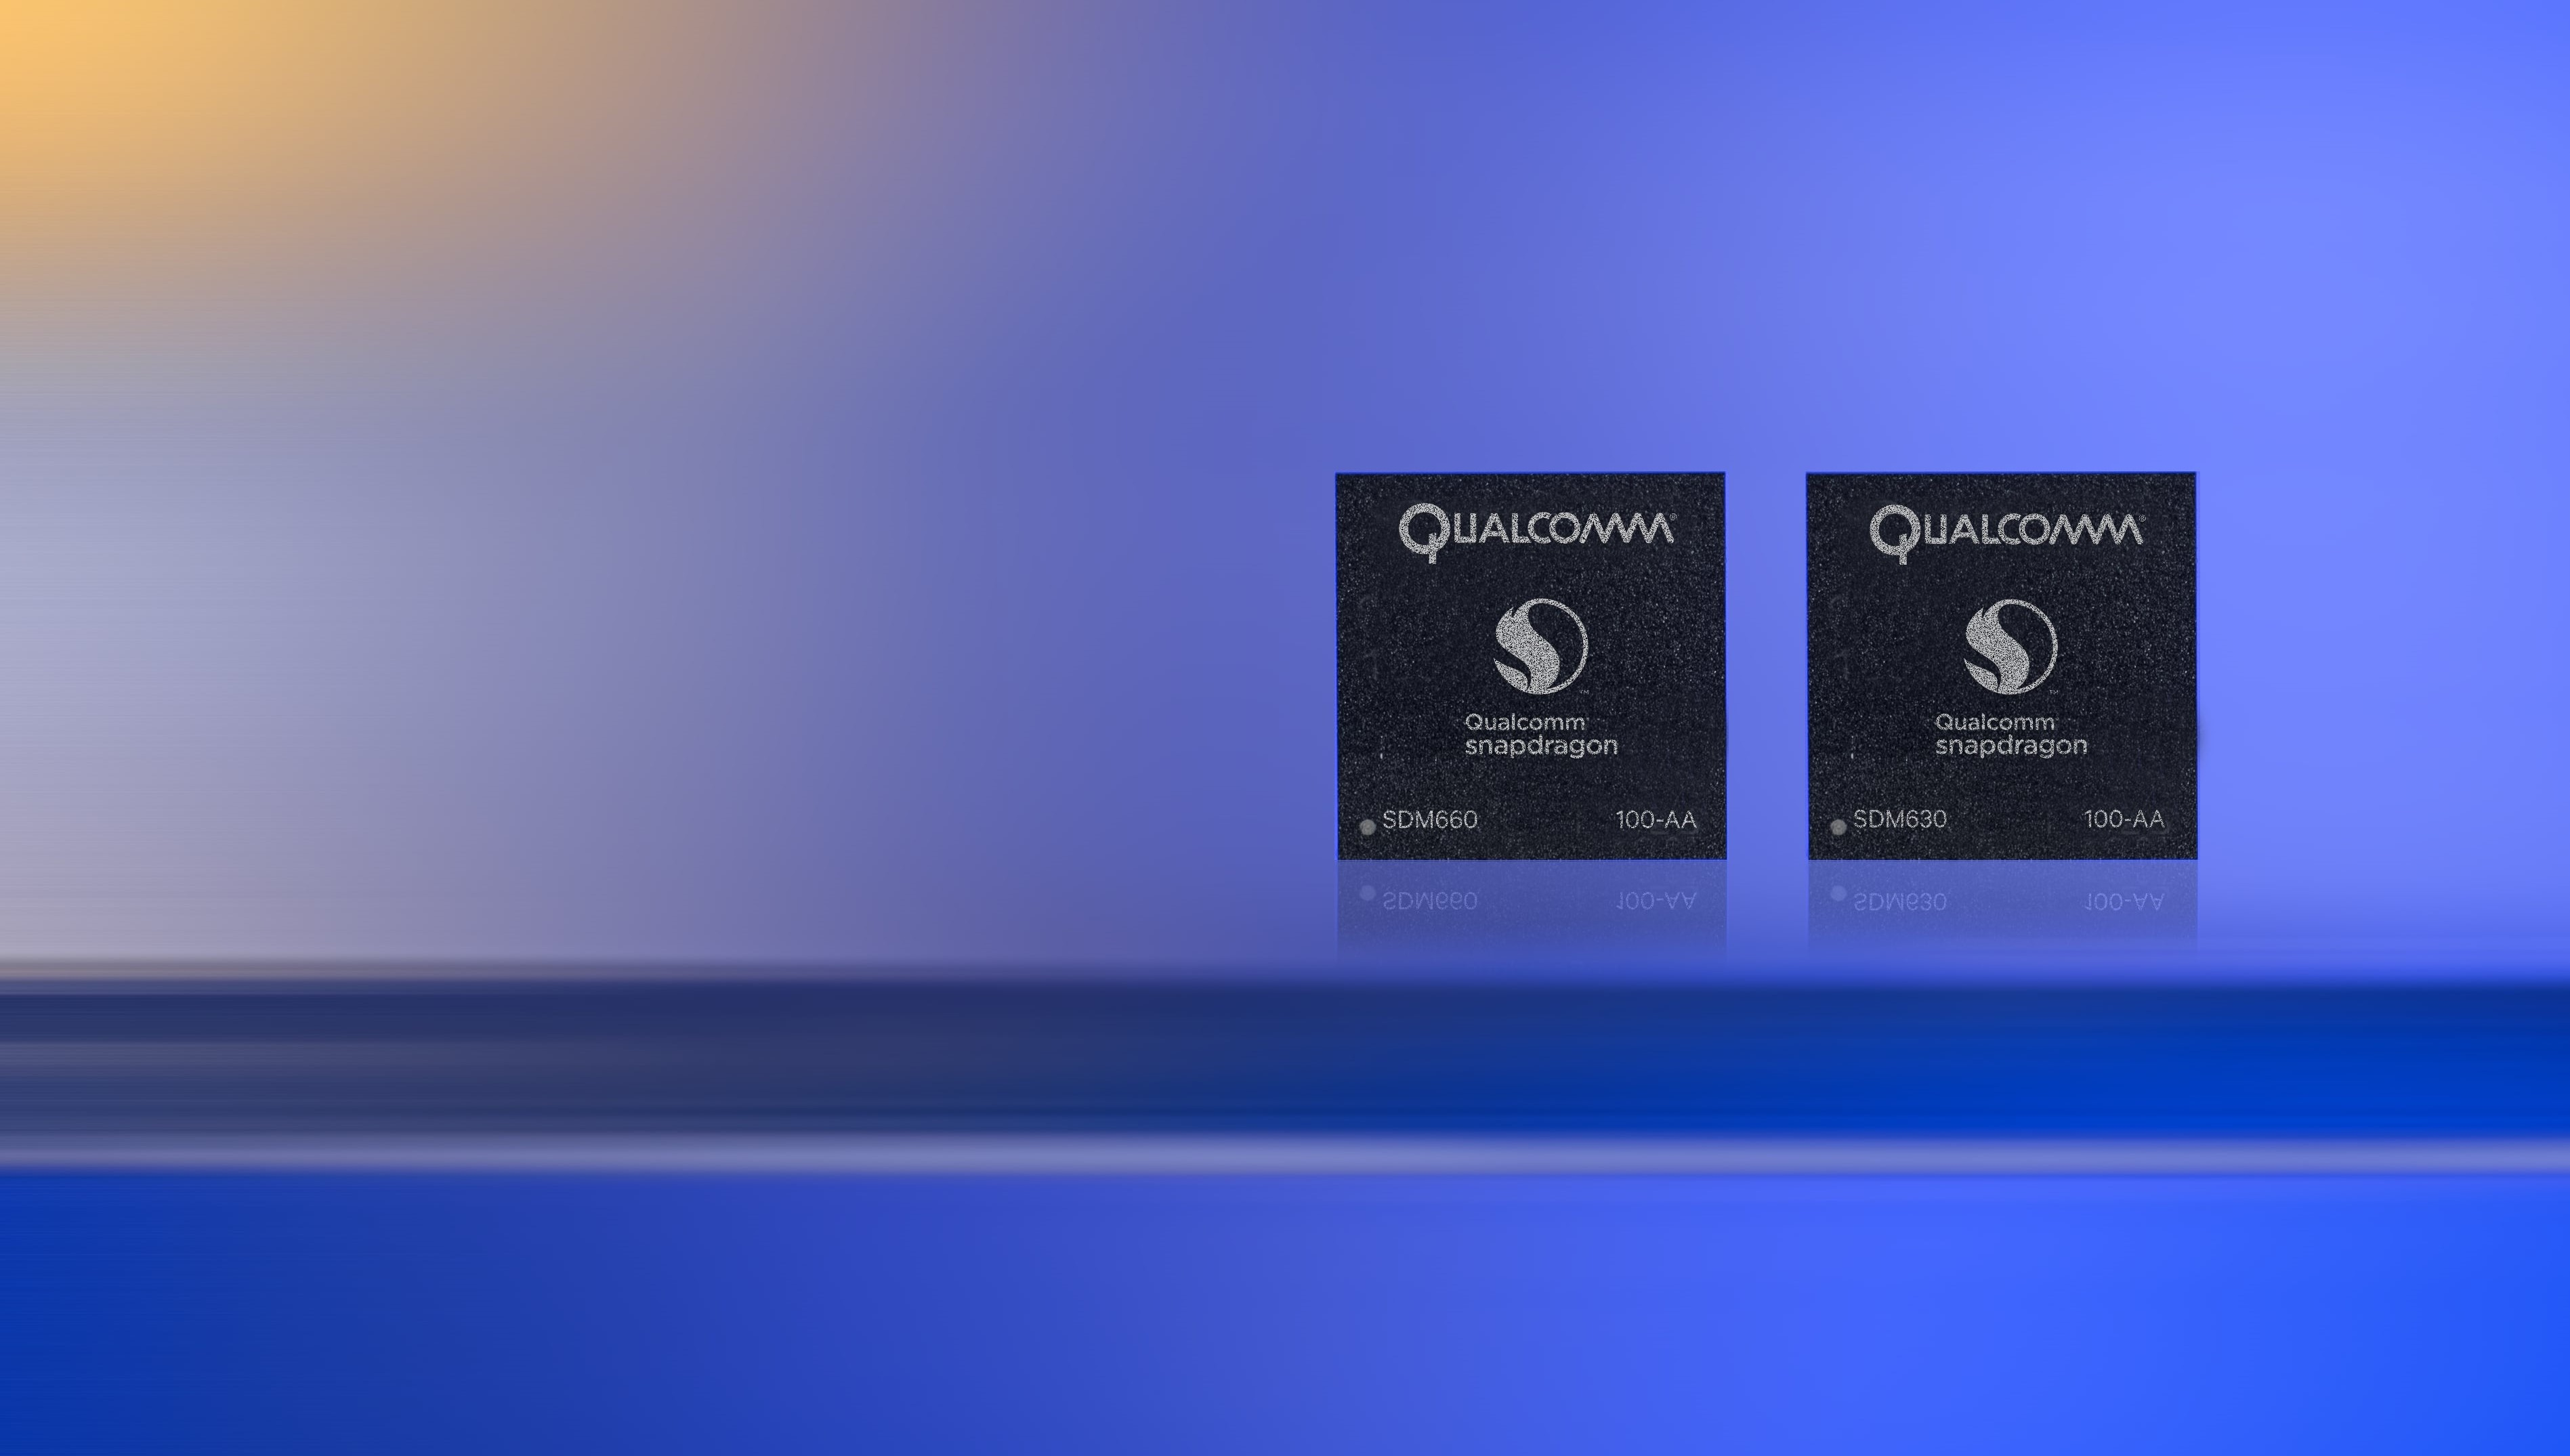 Qualcomm Out-rightly Rejects Broadcom's $130 Bn Proposal